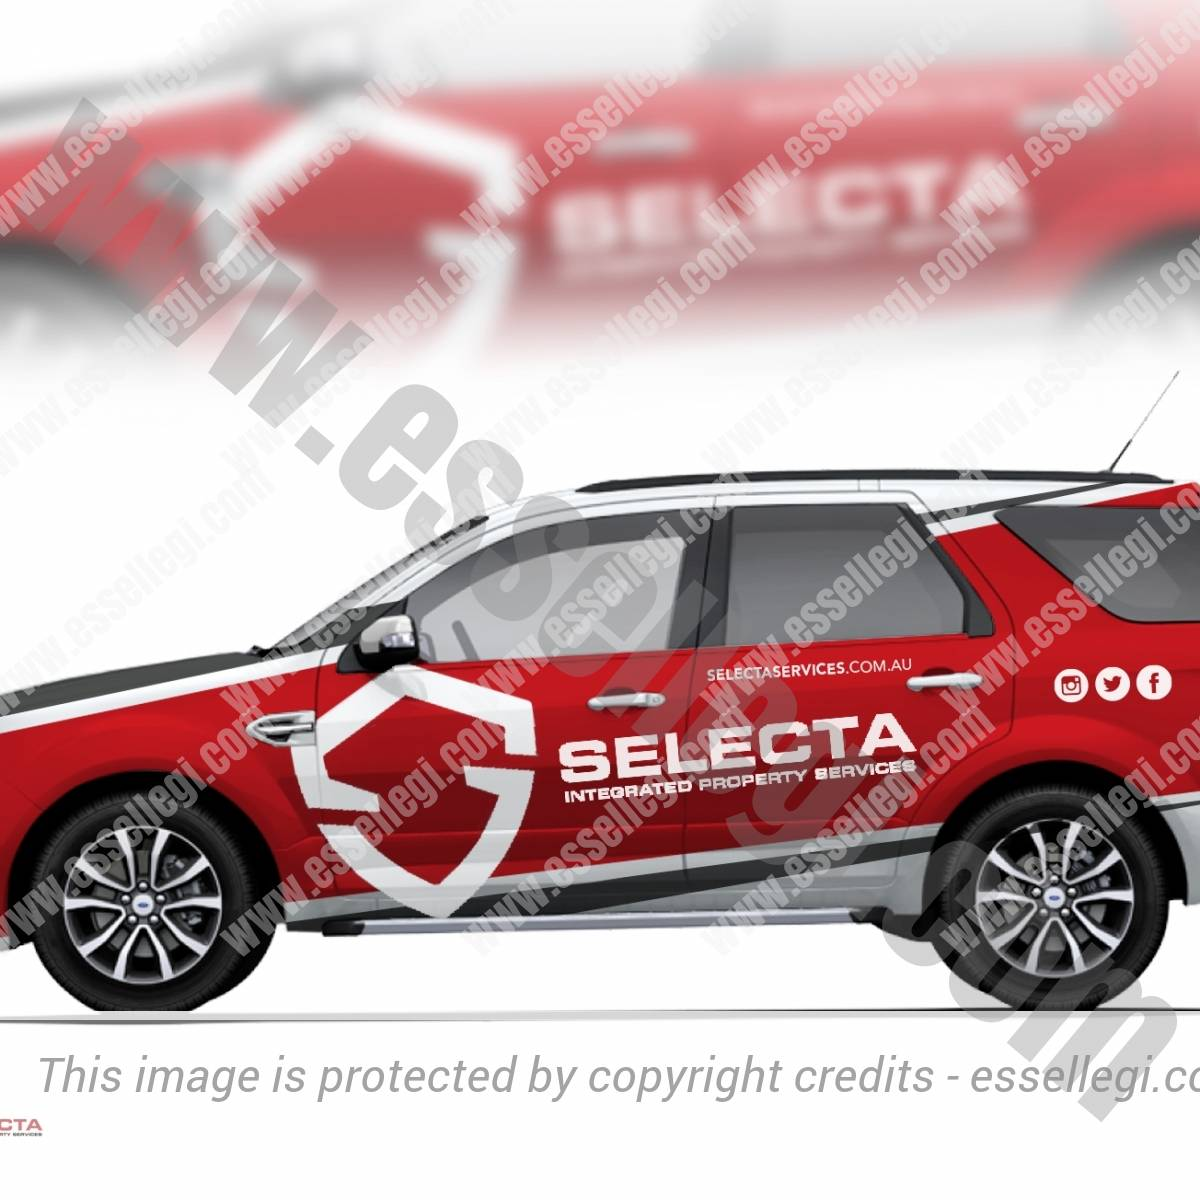 SELECTA – INTEGRATED PROPERTY SERVICES | CAR WRAP DESIGN 🇦🇺